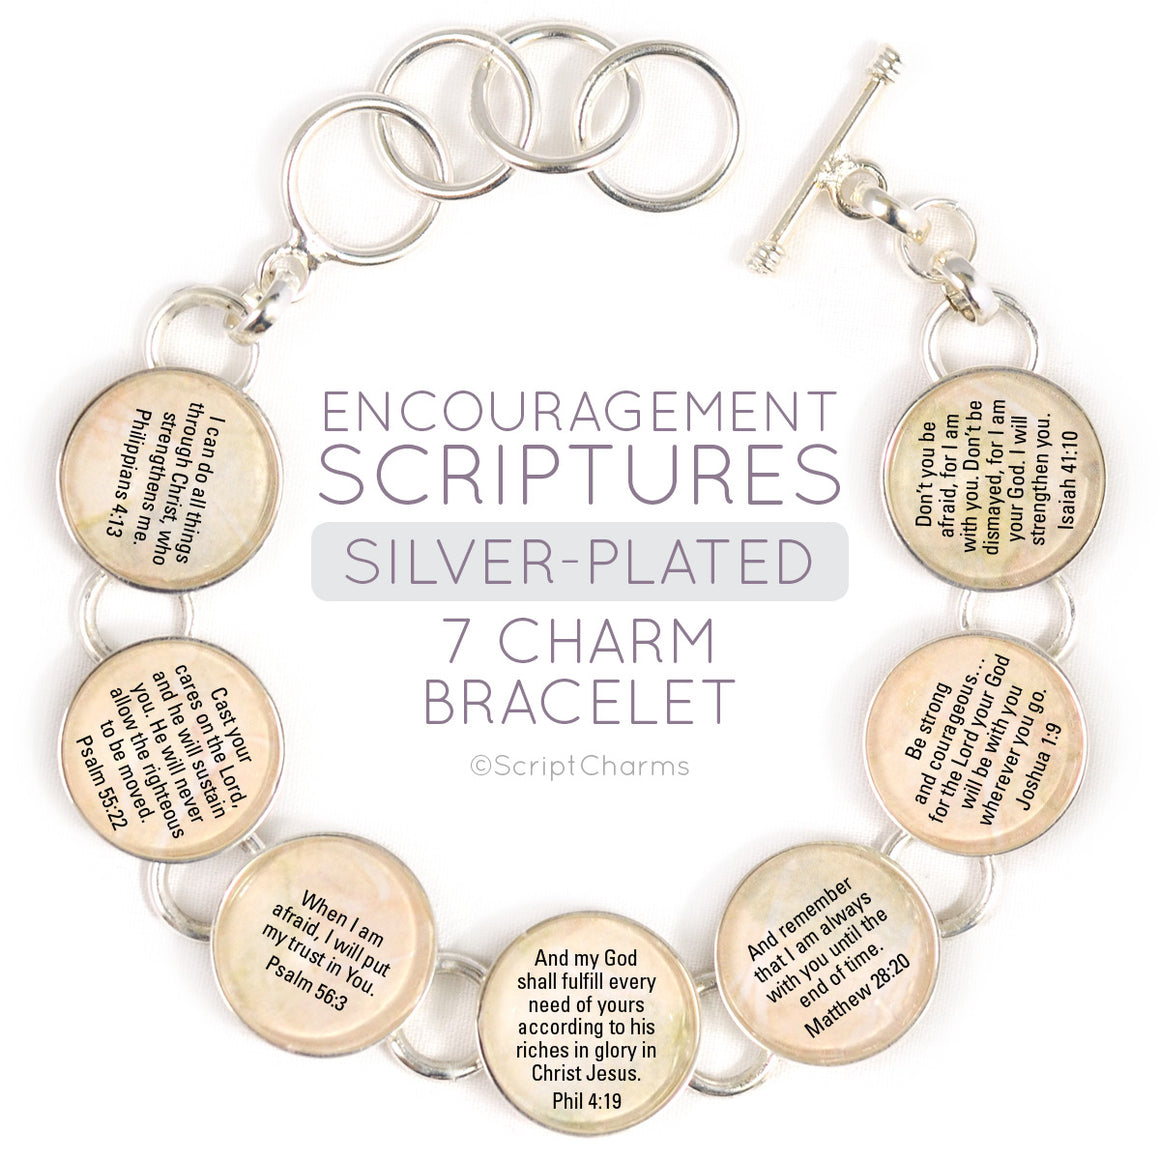 Encouragement Scriptures - Silver-Plated Glass Charm Bracelet, 7 charms